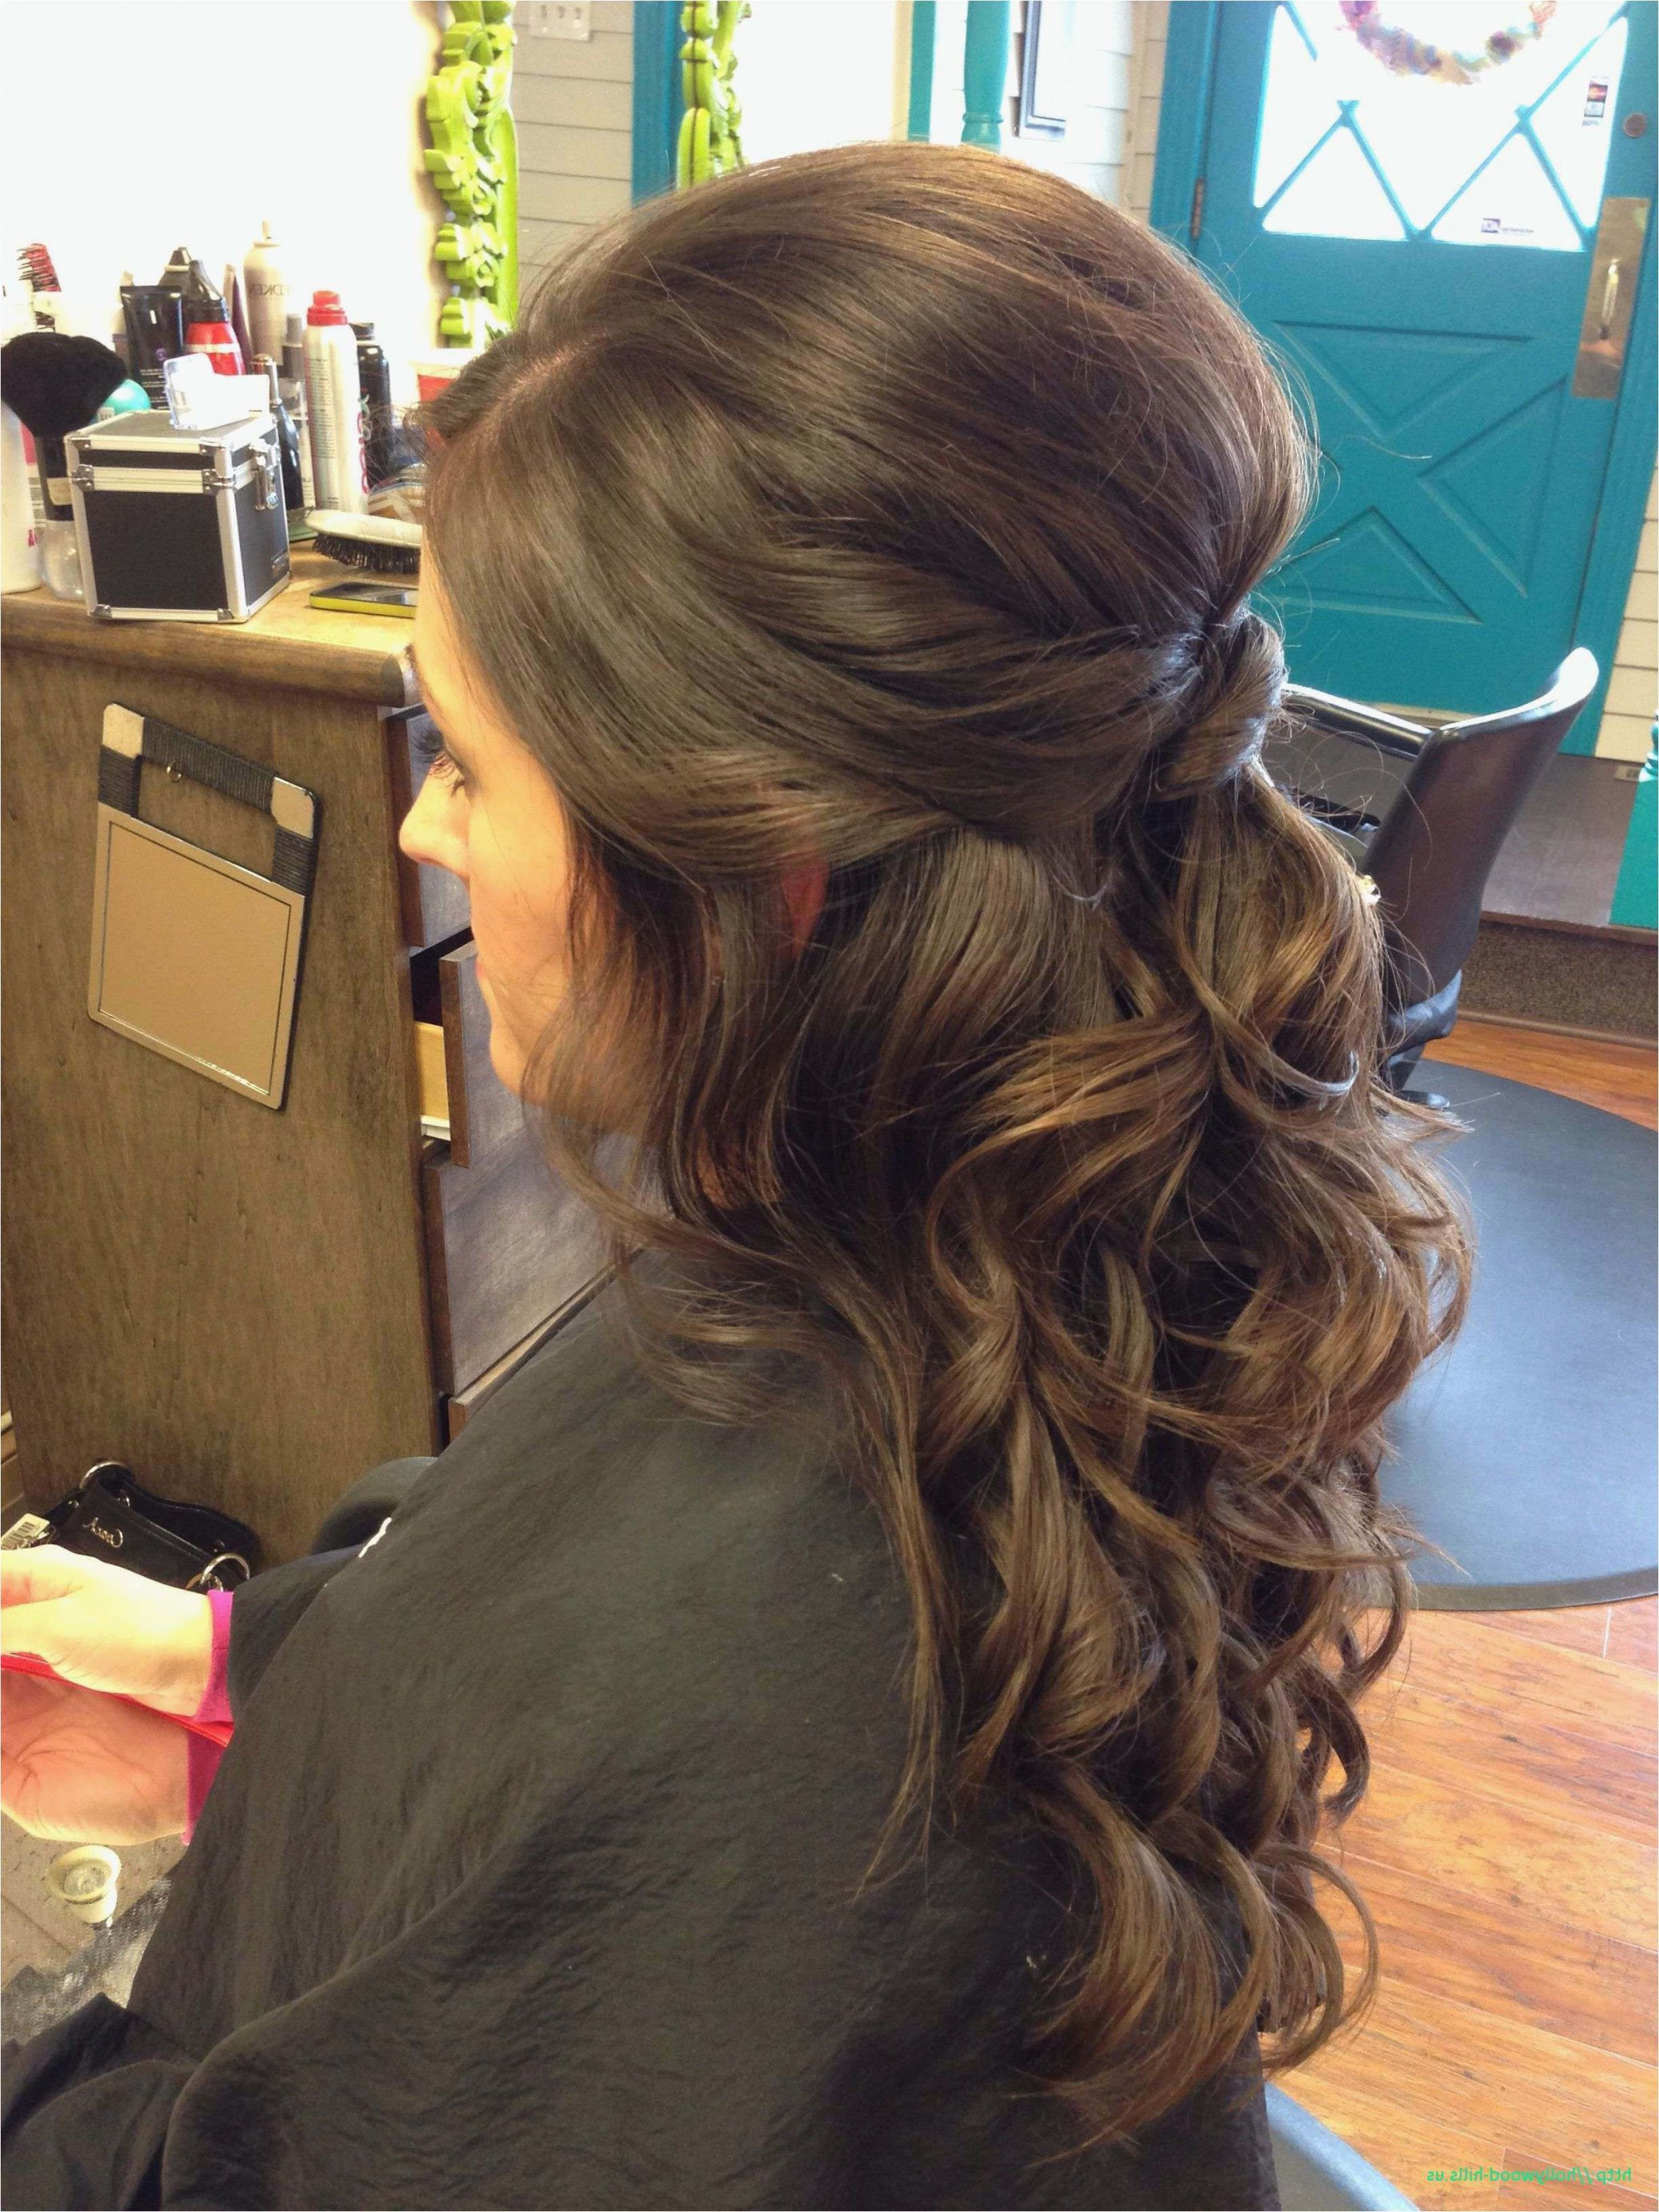 Recent Curled Half Up Hairstyles In 23 Curly Hairstyles For Wedding Half Up (View 18 of 20)